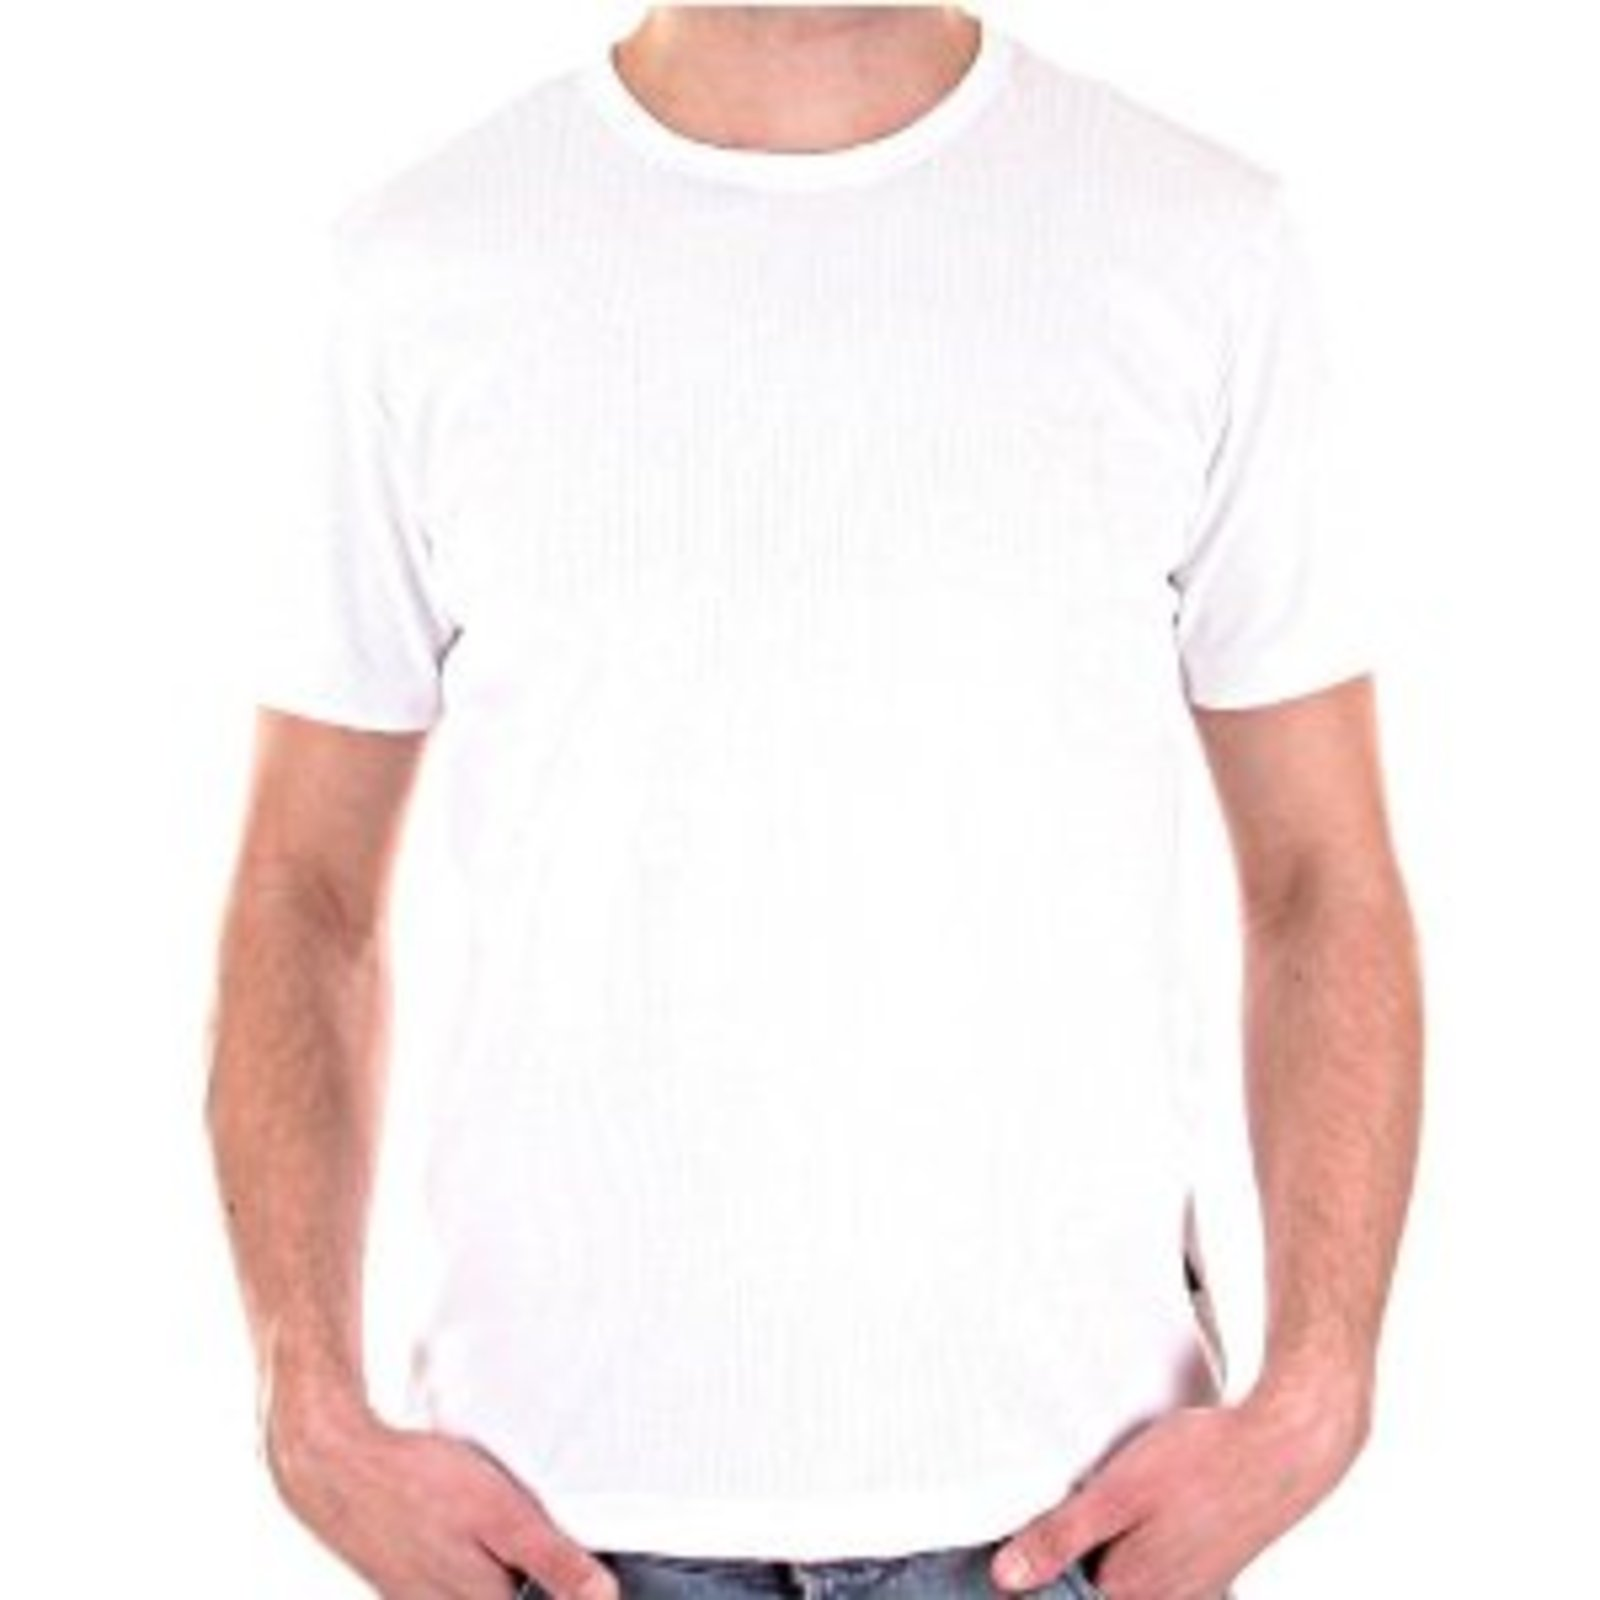 Versace mens white crew neck t shirt vjcm3655 at togged for Crew neck white t shirt